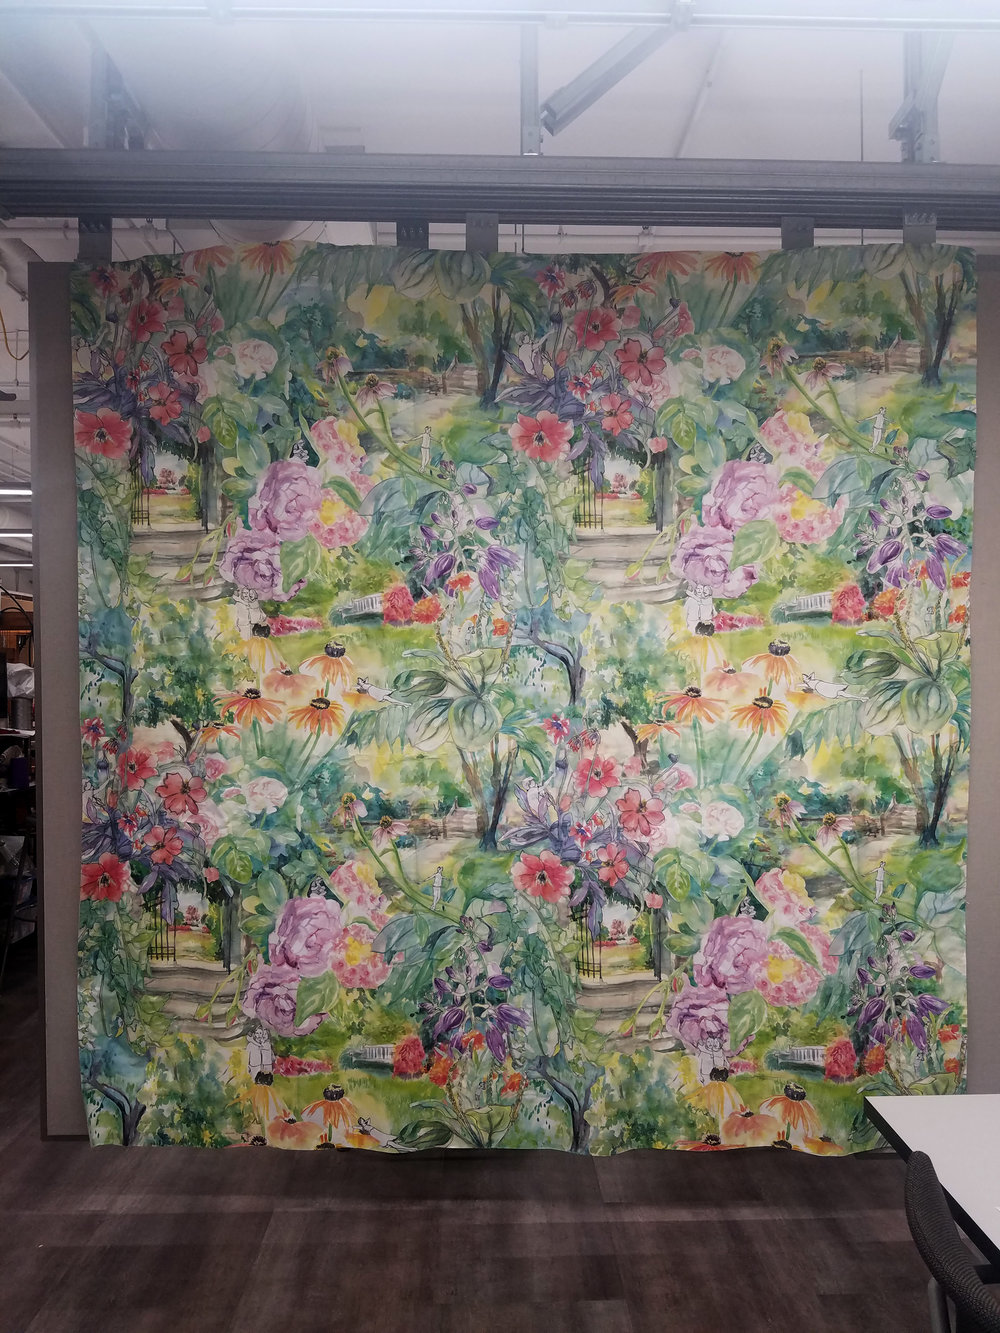 The finished 8 x 8 foot collaged square repeat pattern.